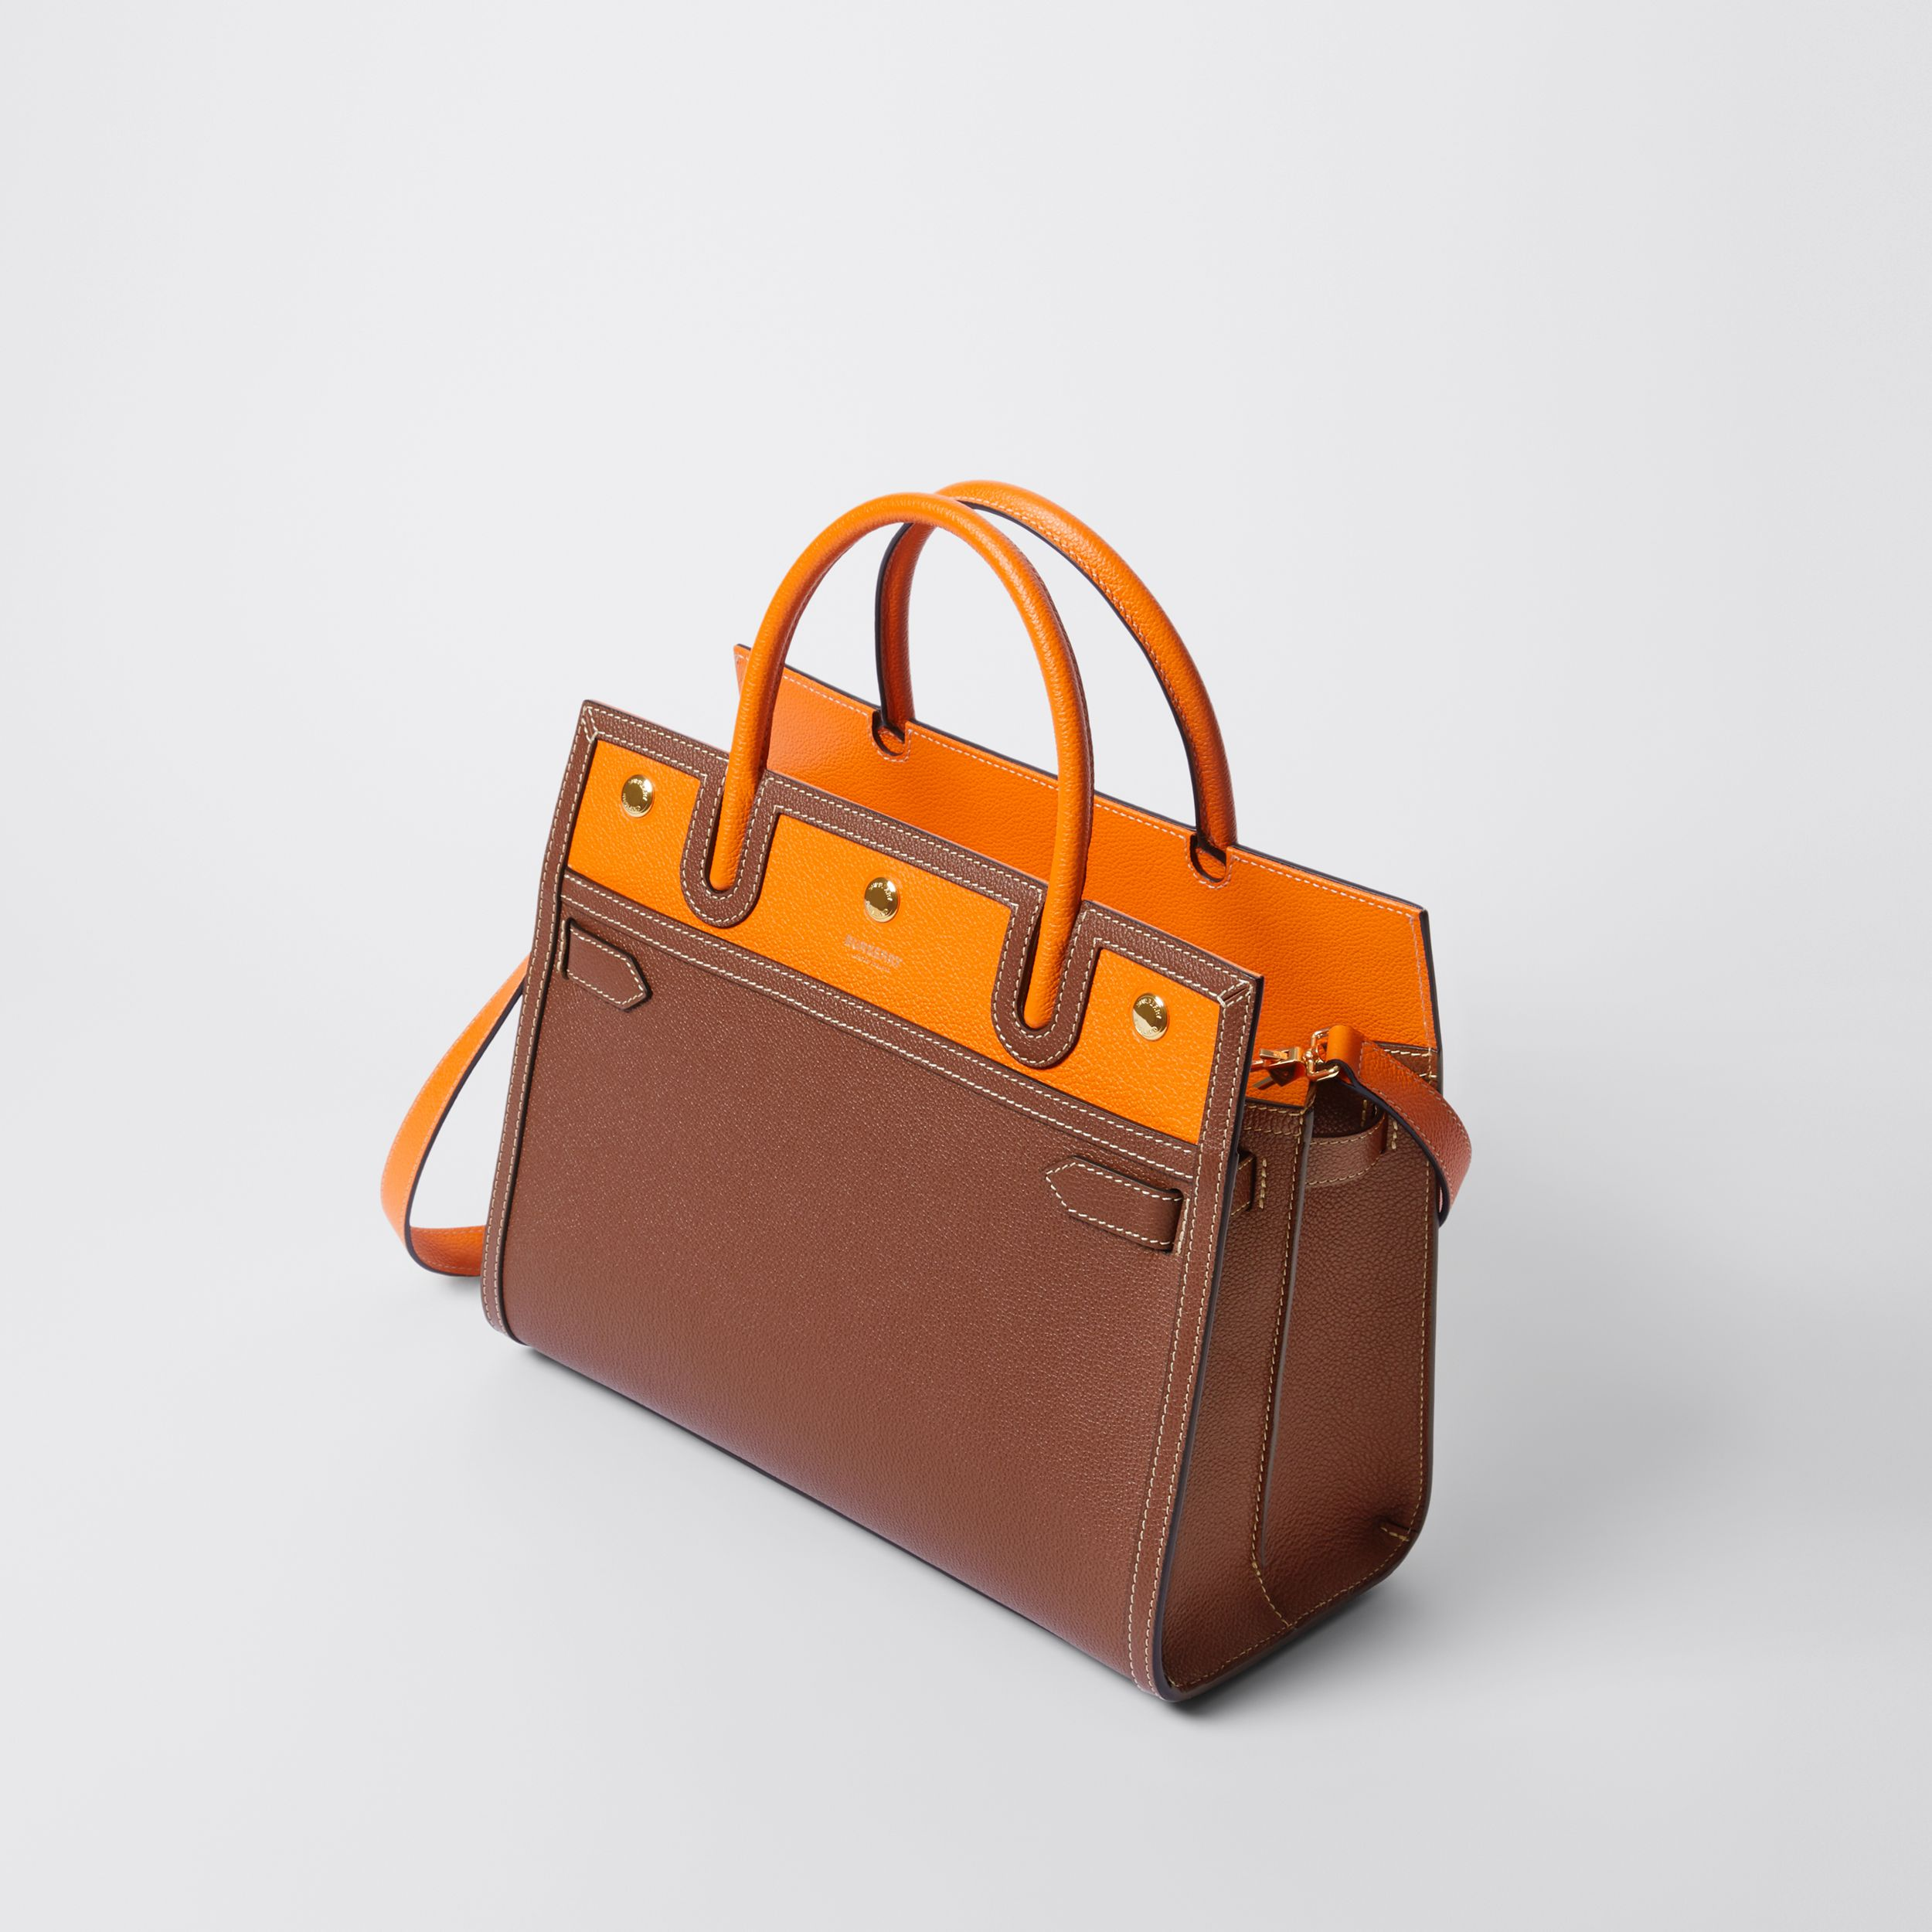 Small Leather Two-handle Title Bag in Tan/bright Orange - Women | Burberry - 4